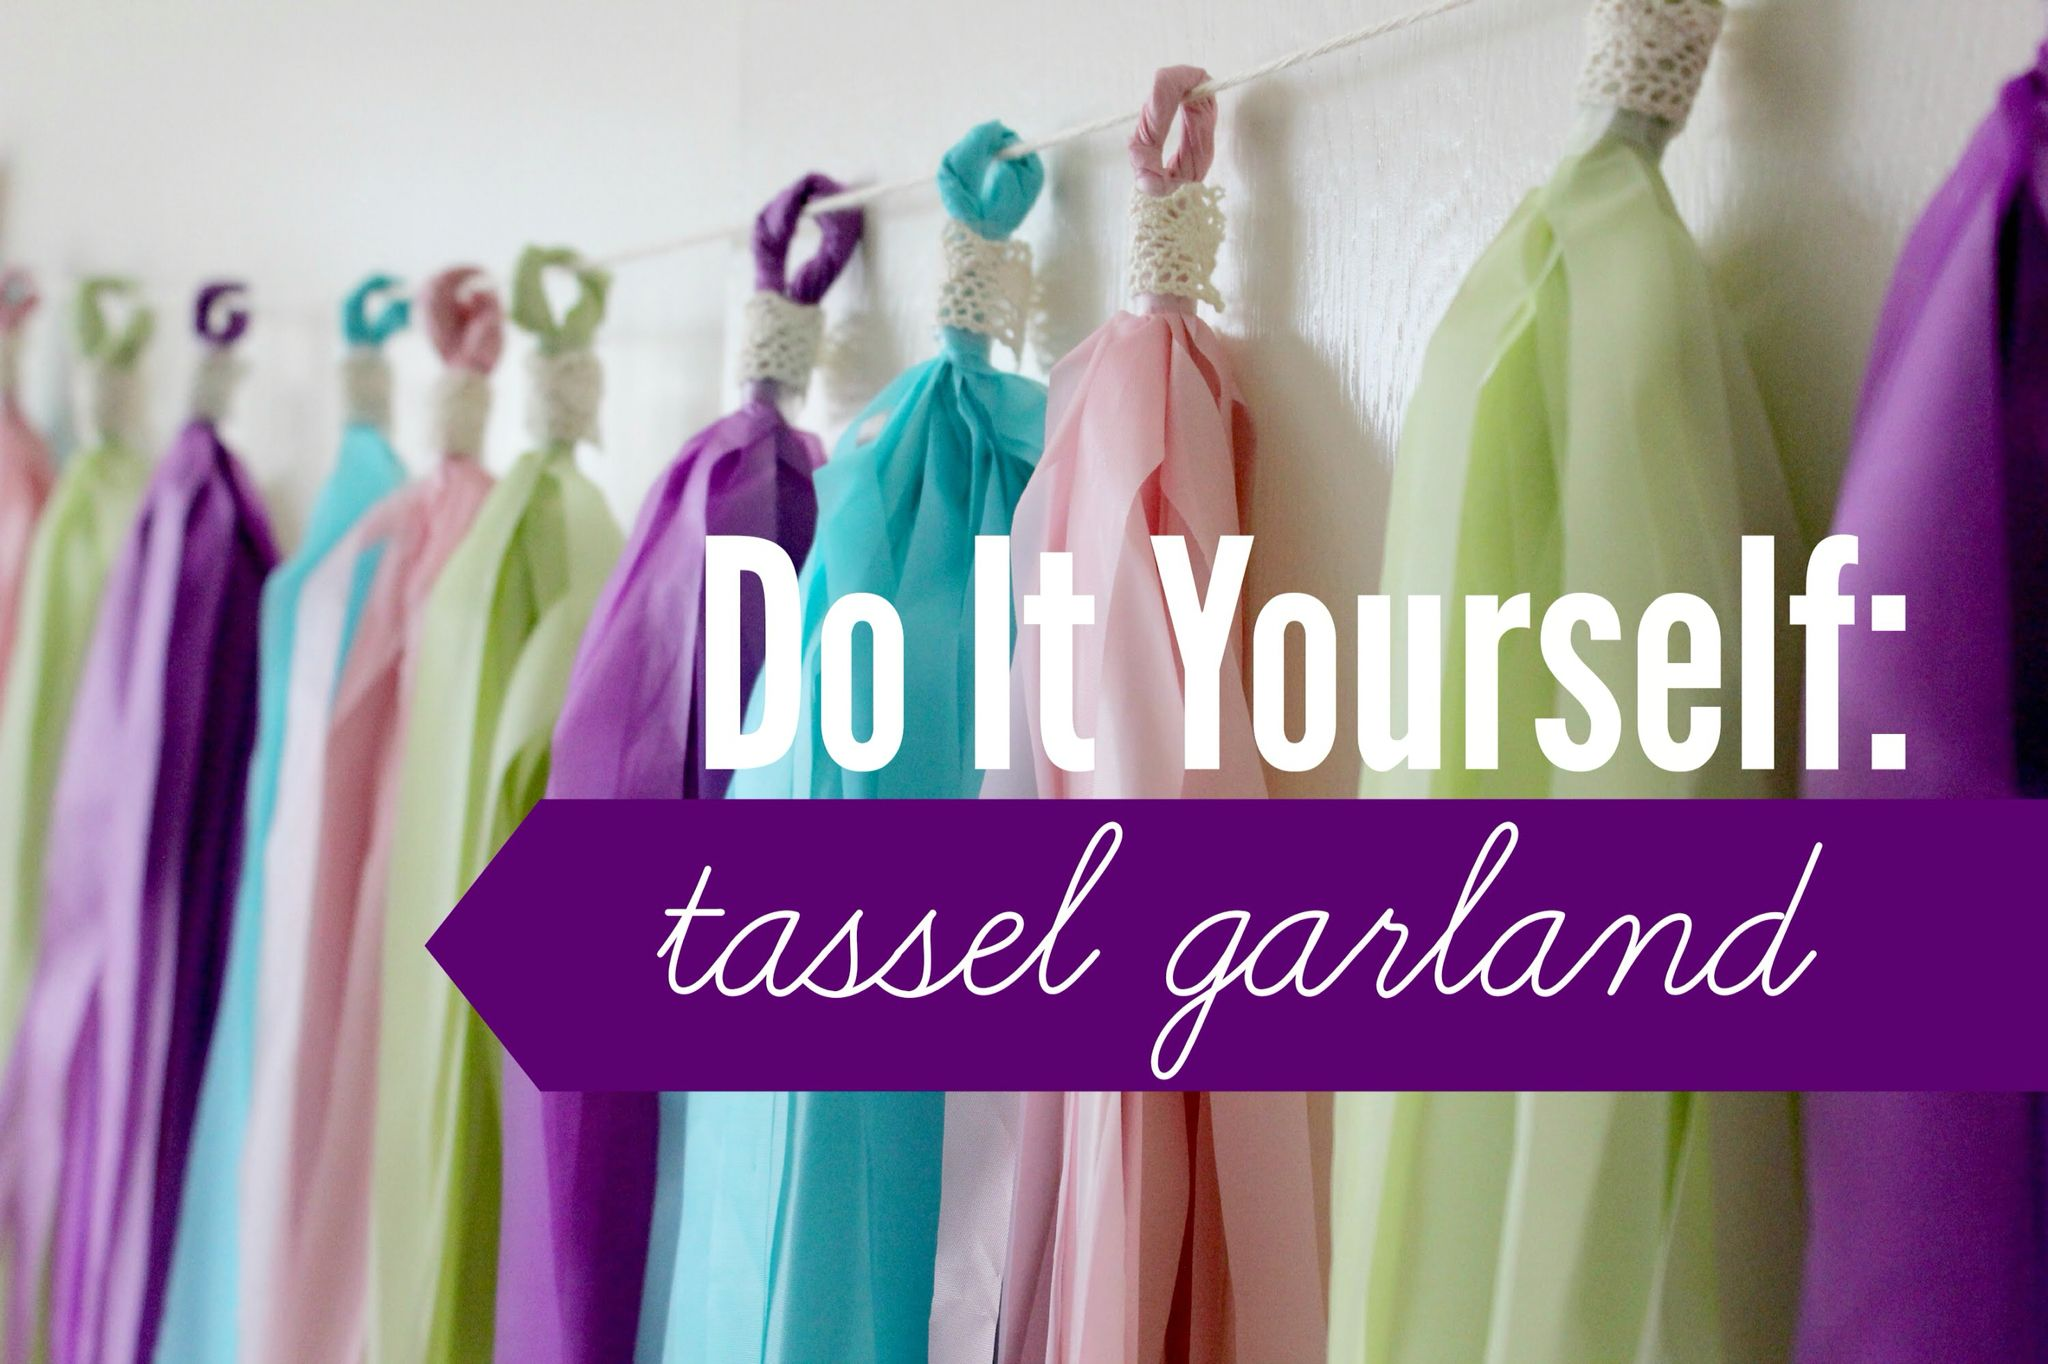 TasselsDIY Diy tassel garland, Diy tablecloth, Tassel